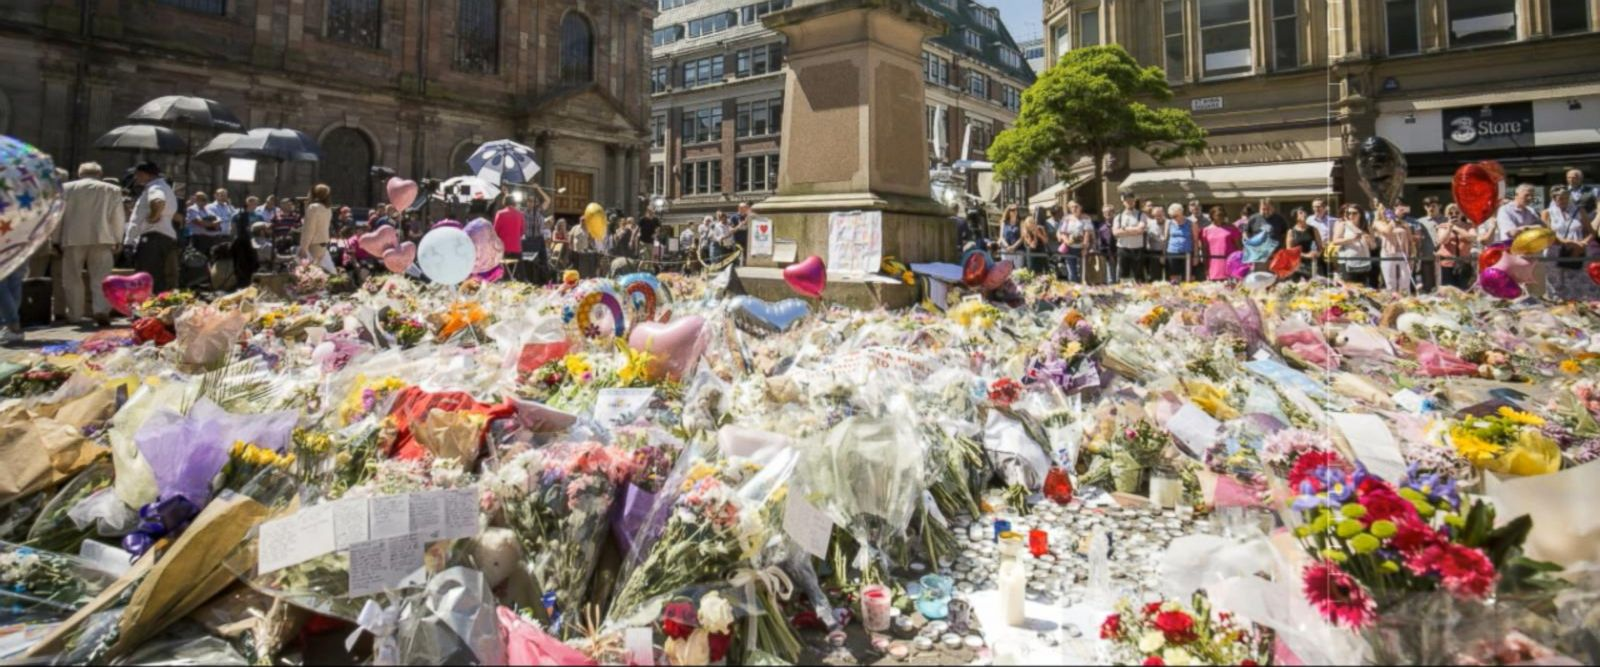 VIDEO: Ariana Grande vows to perform again in Manchester after devastating suicide bombing